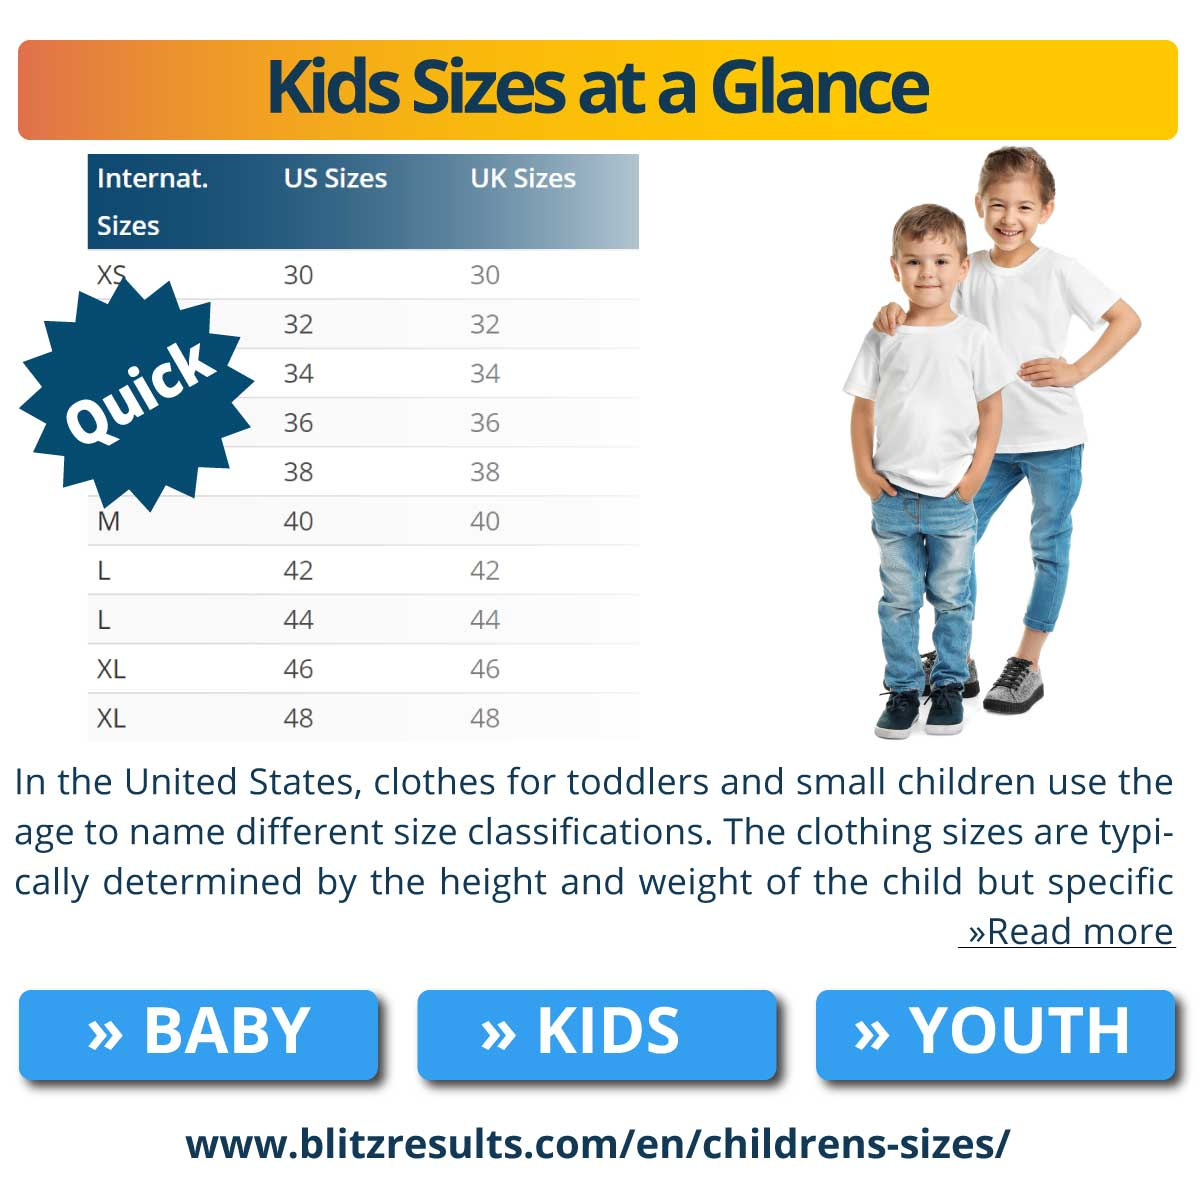 Kids Sizes at a Glance